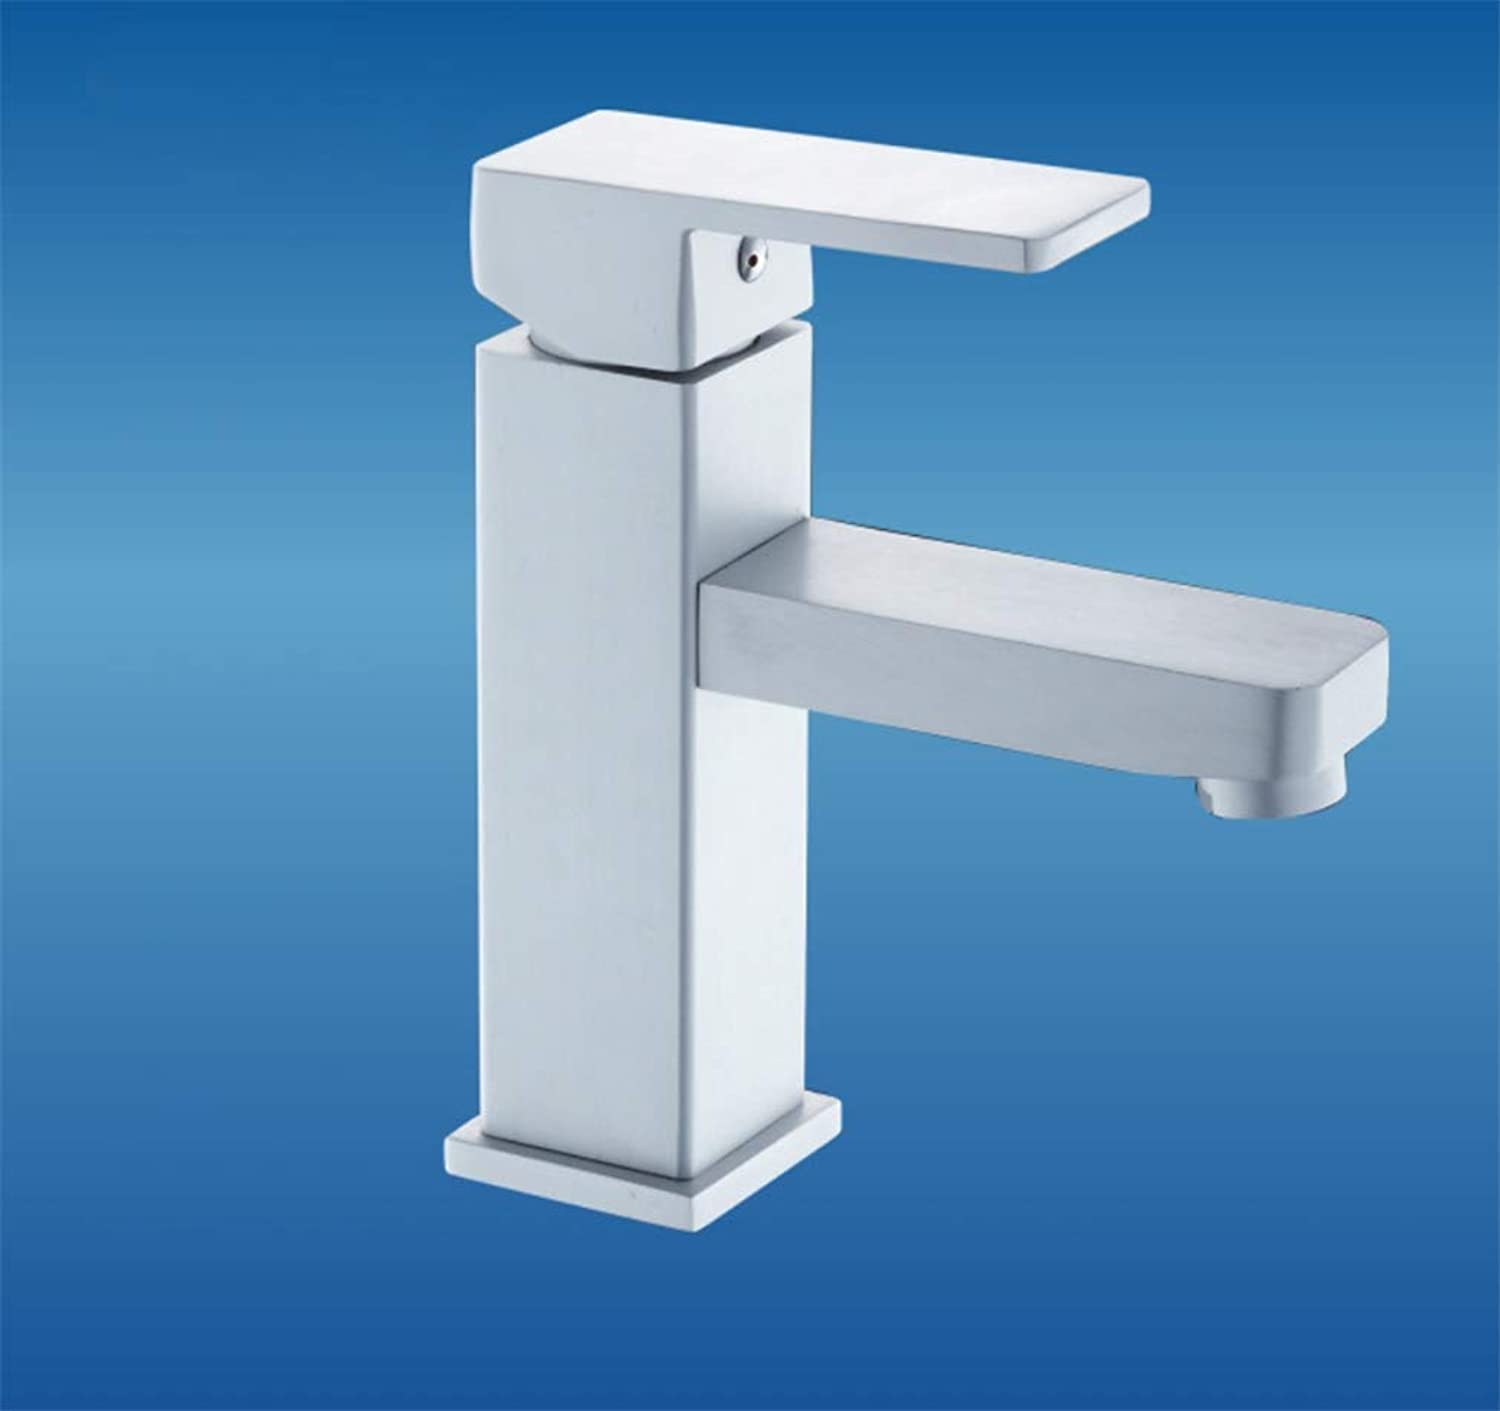 Basin Mixer Tap Bath Fixtures Wash Basinsinkkitchen Space Aluminum Basin, Faucet, Space, Aluminum Faucet, Hot and Cold Water Faucet.